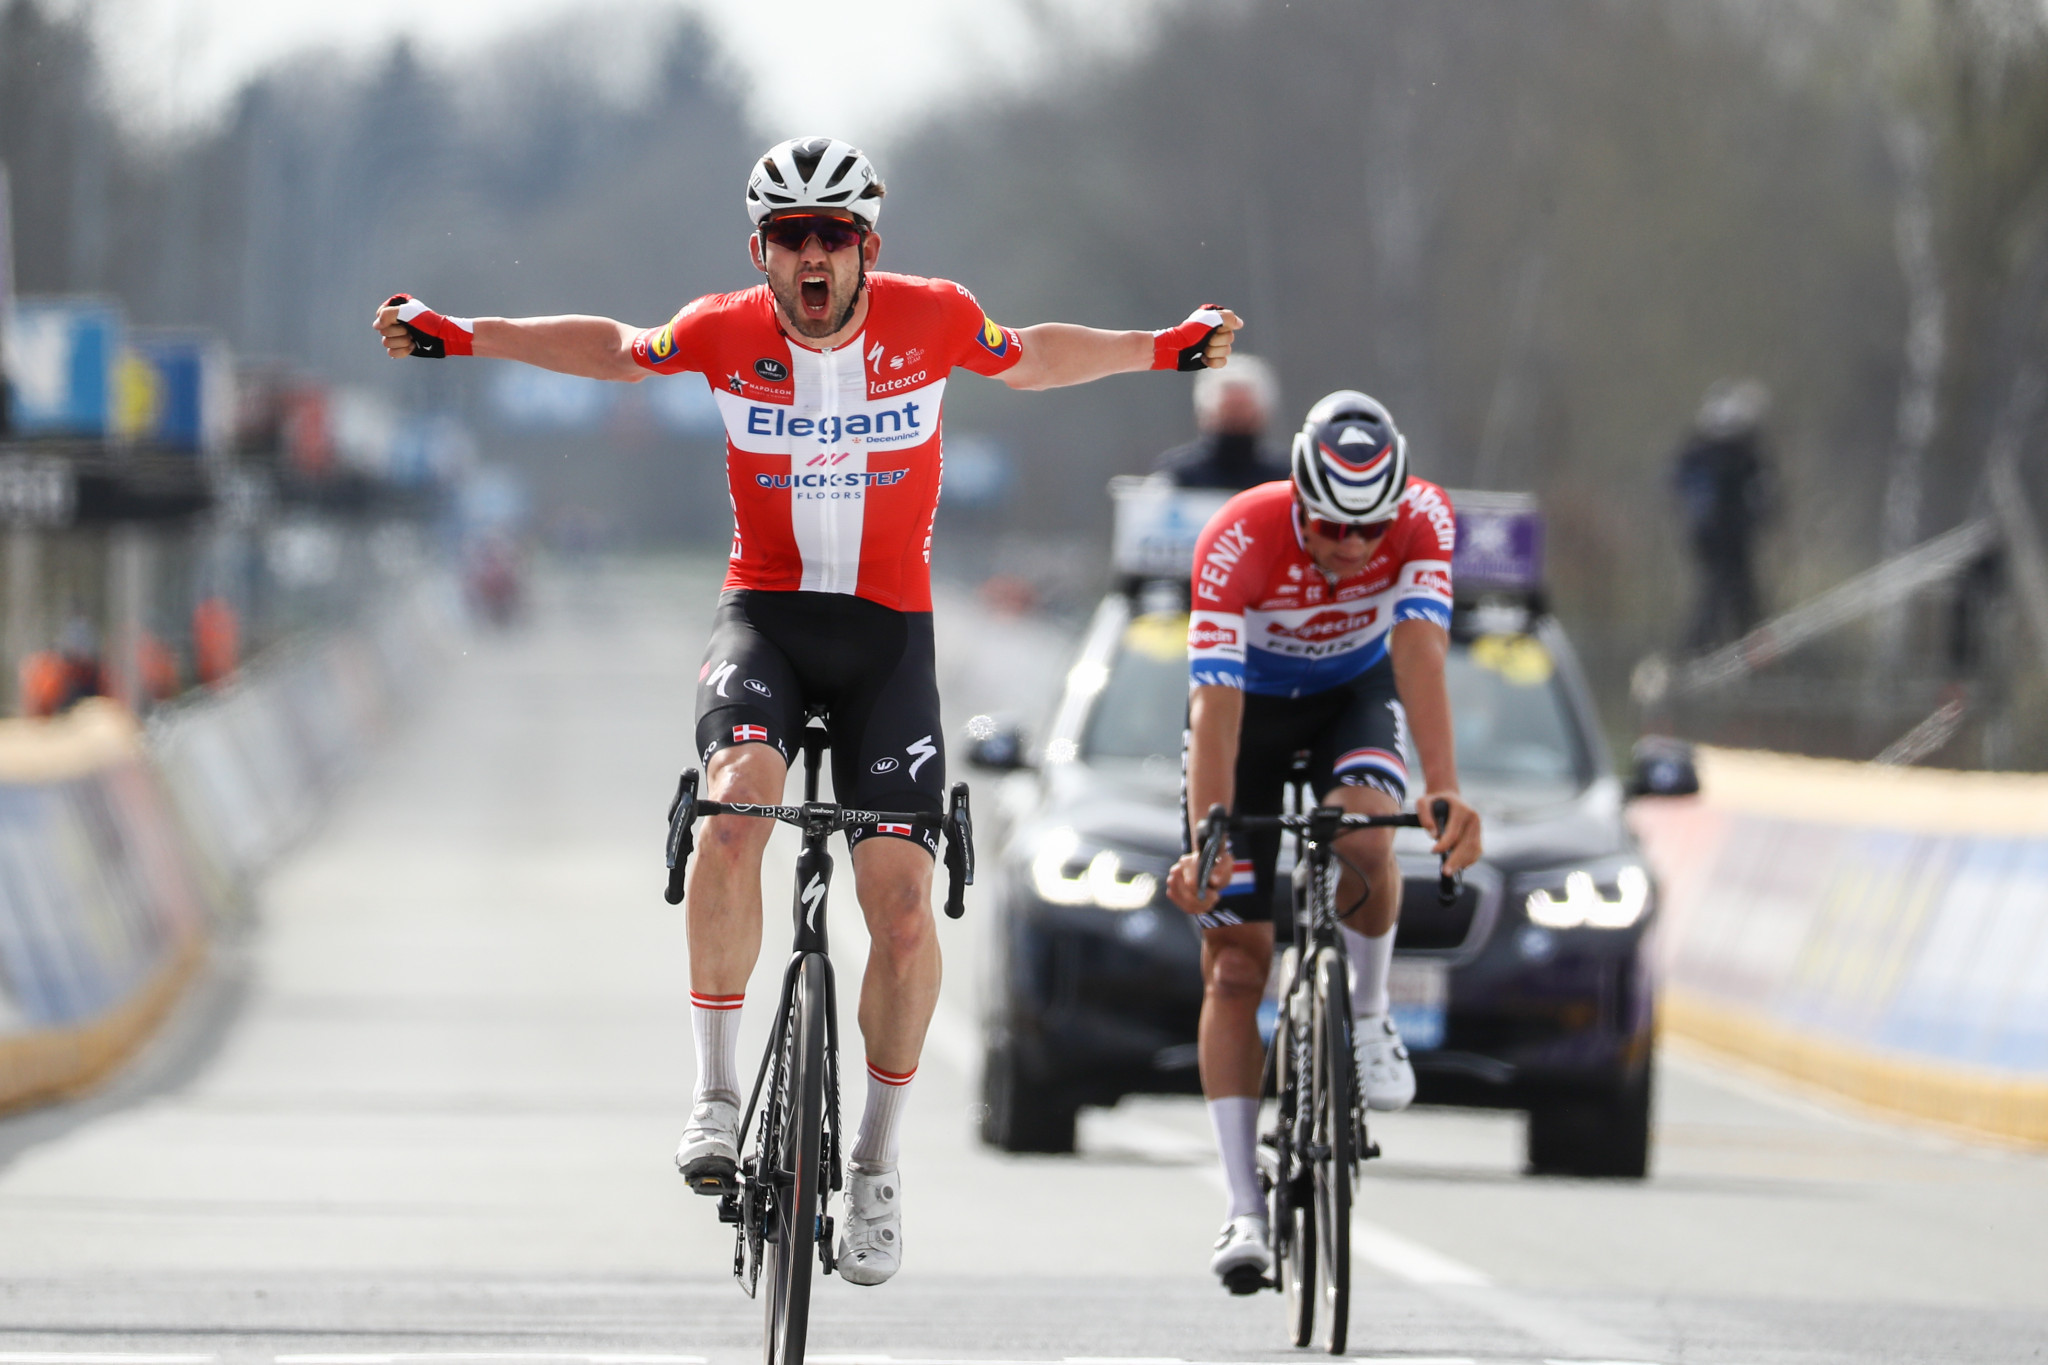 Asgreen takes upset win as Van Vleuten victorious at Tour of Flanders